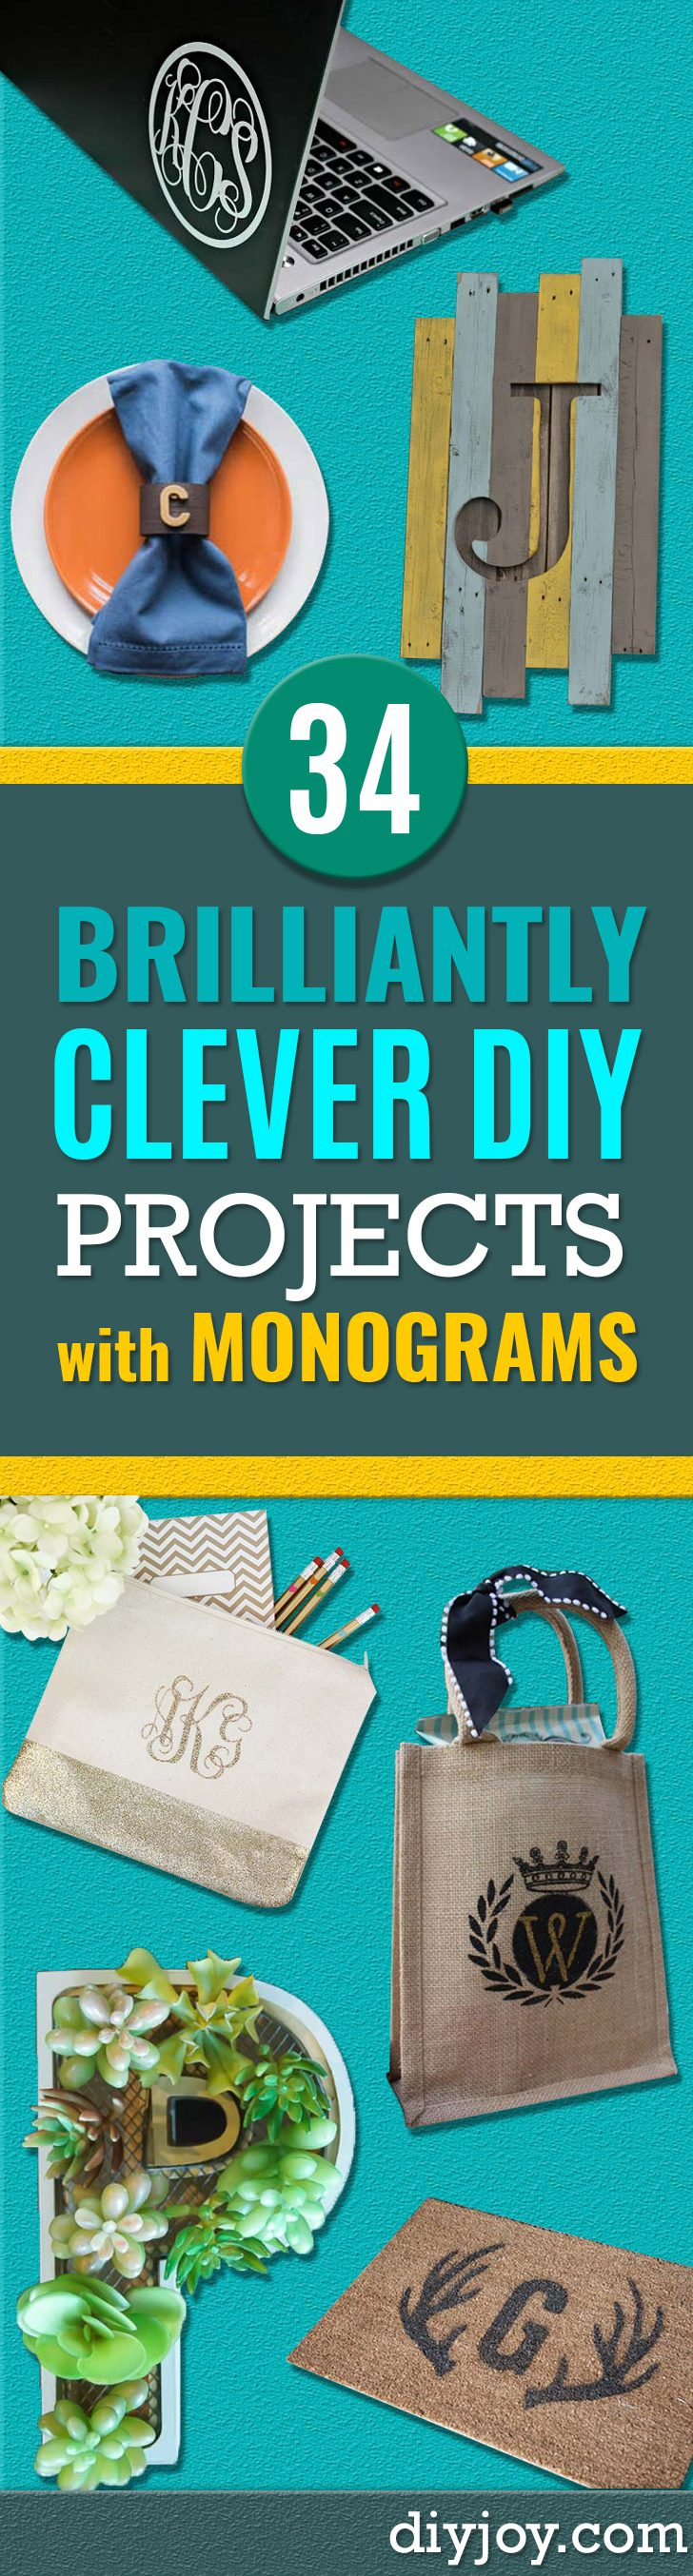 DIY Monogram Projects and Crafts Ideas - Letters, Wall Art, Mason Jar Ideas, Printables, Stickers, Embroidery Tutorials, Home and Room Decor, Pillows, Shirts and Fashion Tutorials - Fun and Cool Ideas for Teens, Tweens and Adults Make Great DIY Gifts http://stage.diyprojectsforteens.com/diy-projects-with-monograms